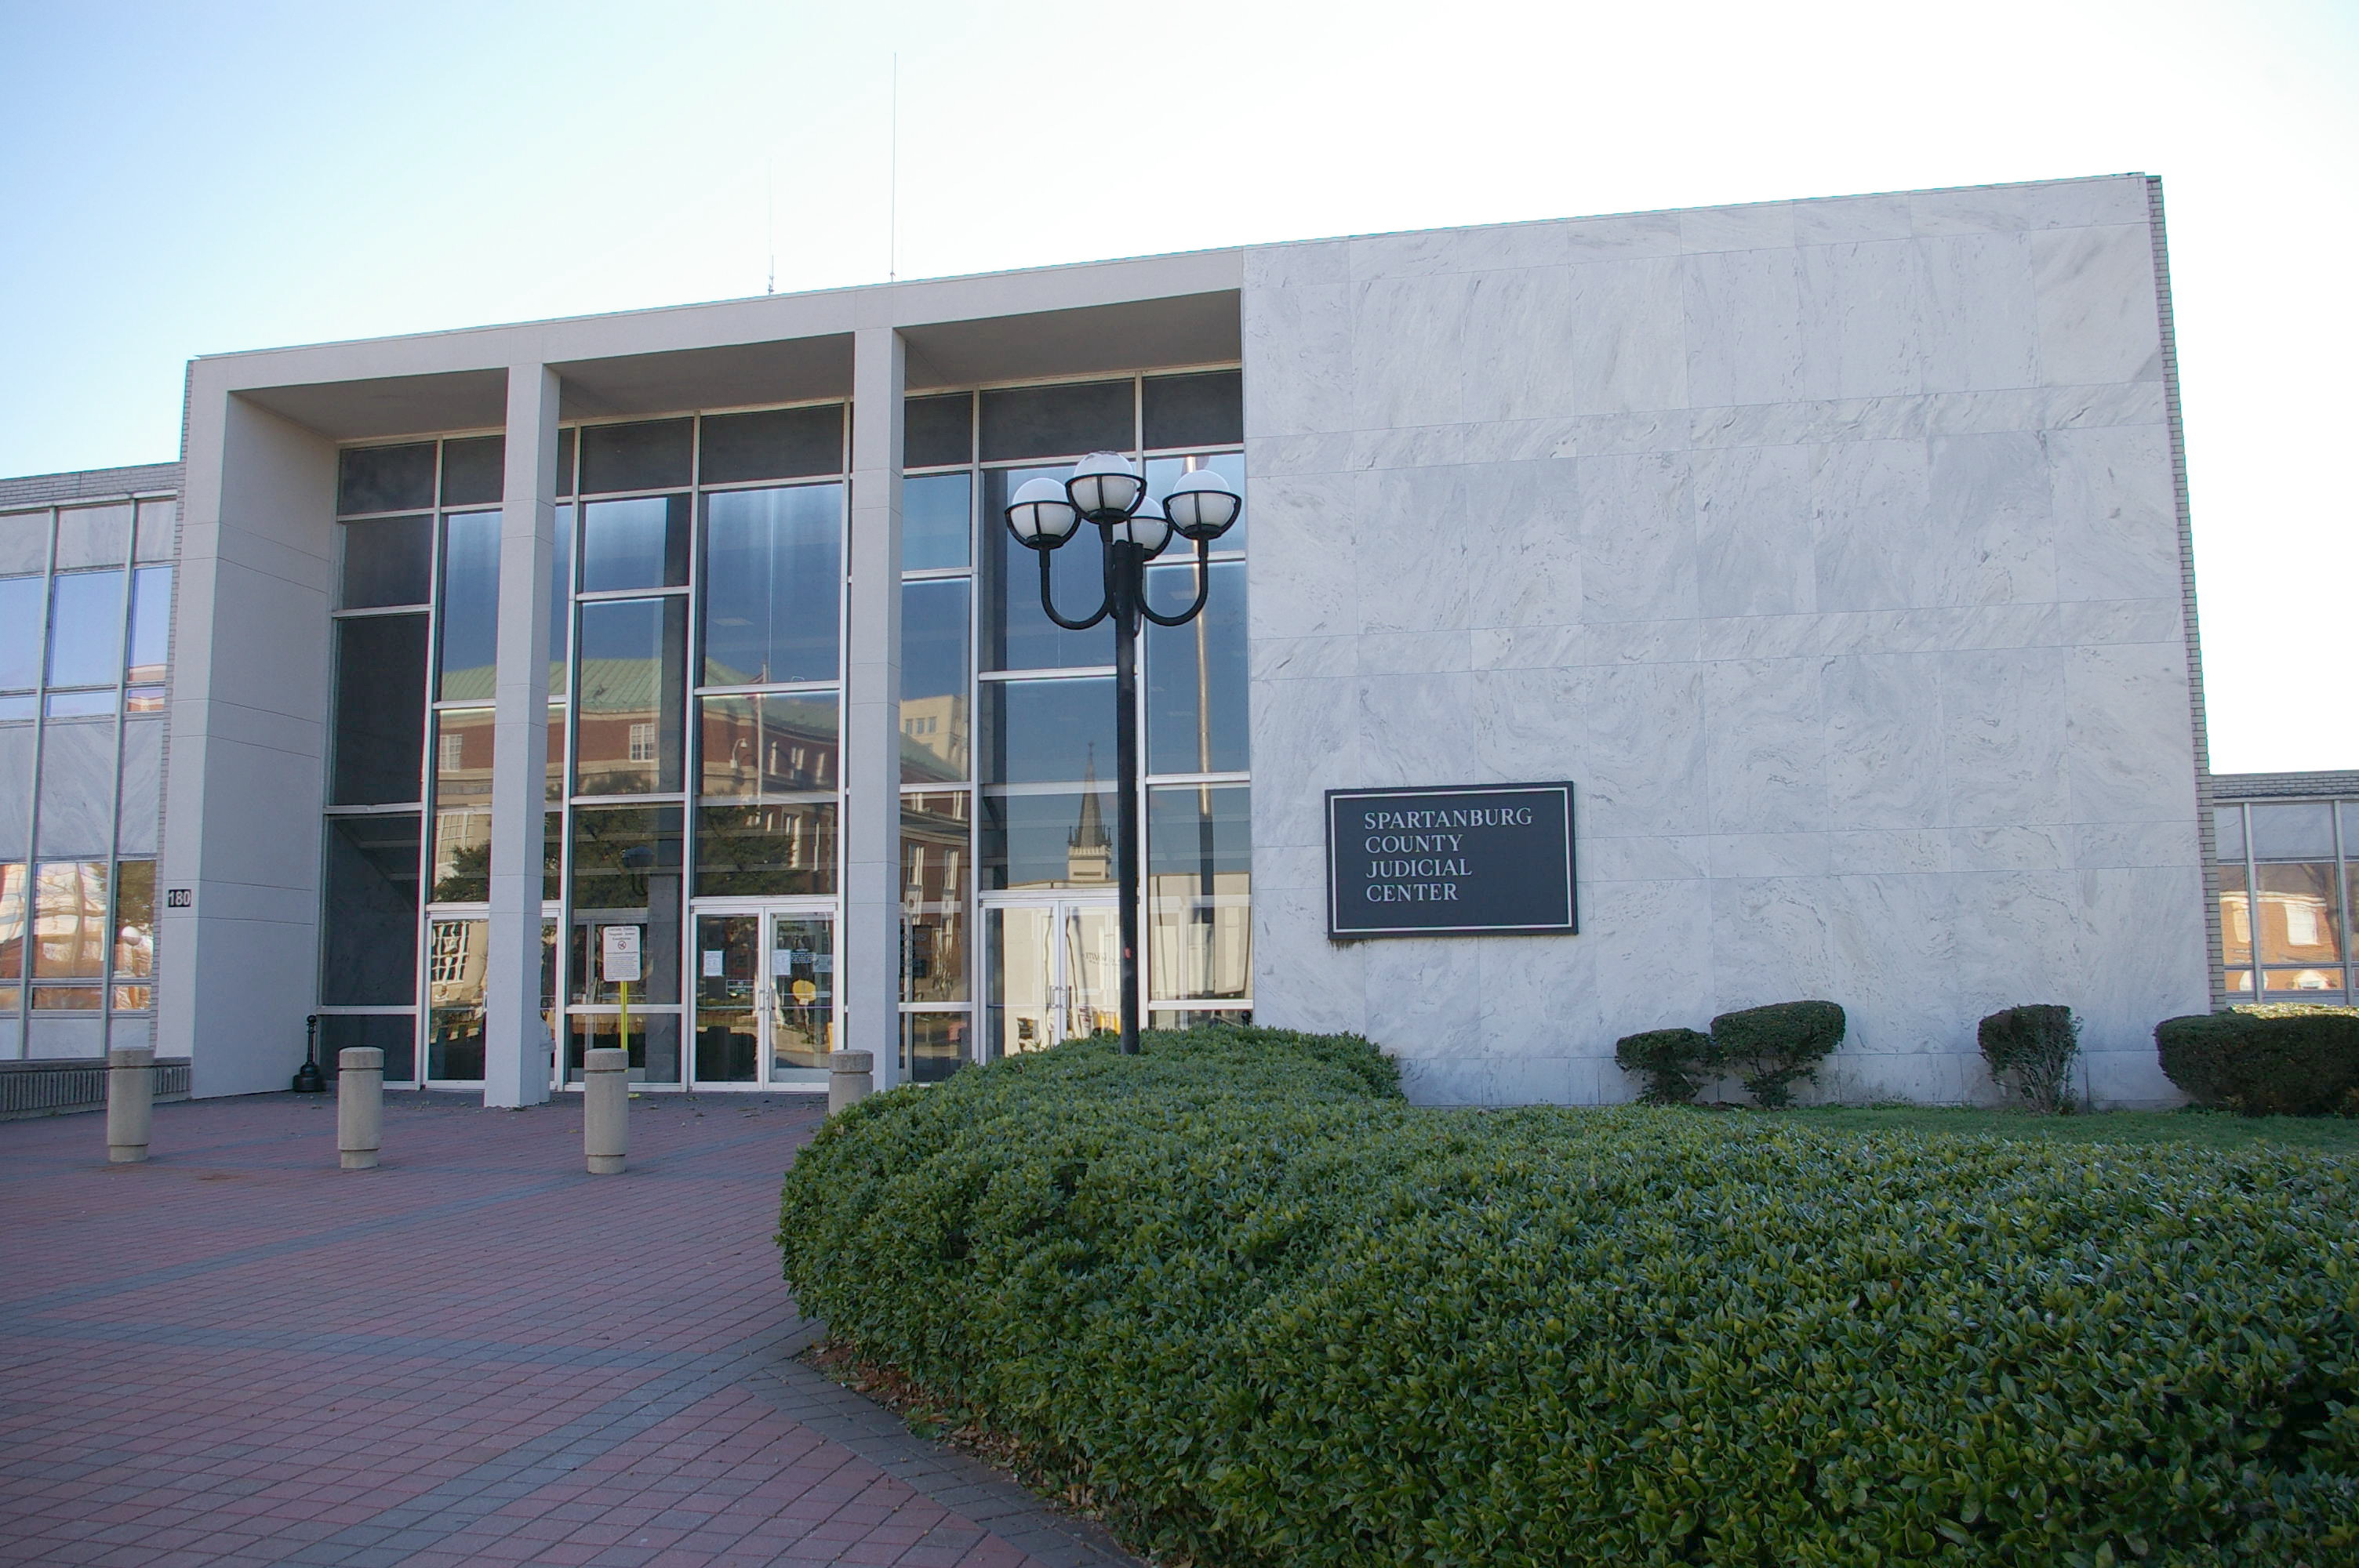 Spartanburg County Us Courthouses